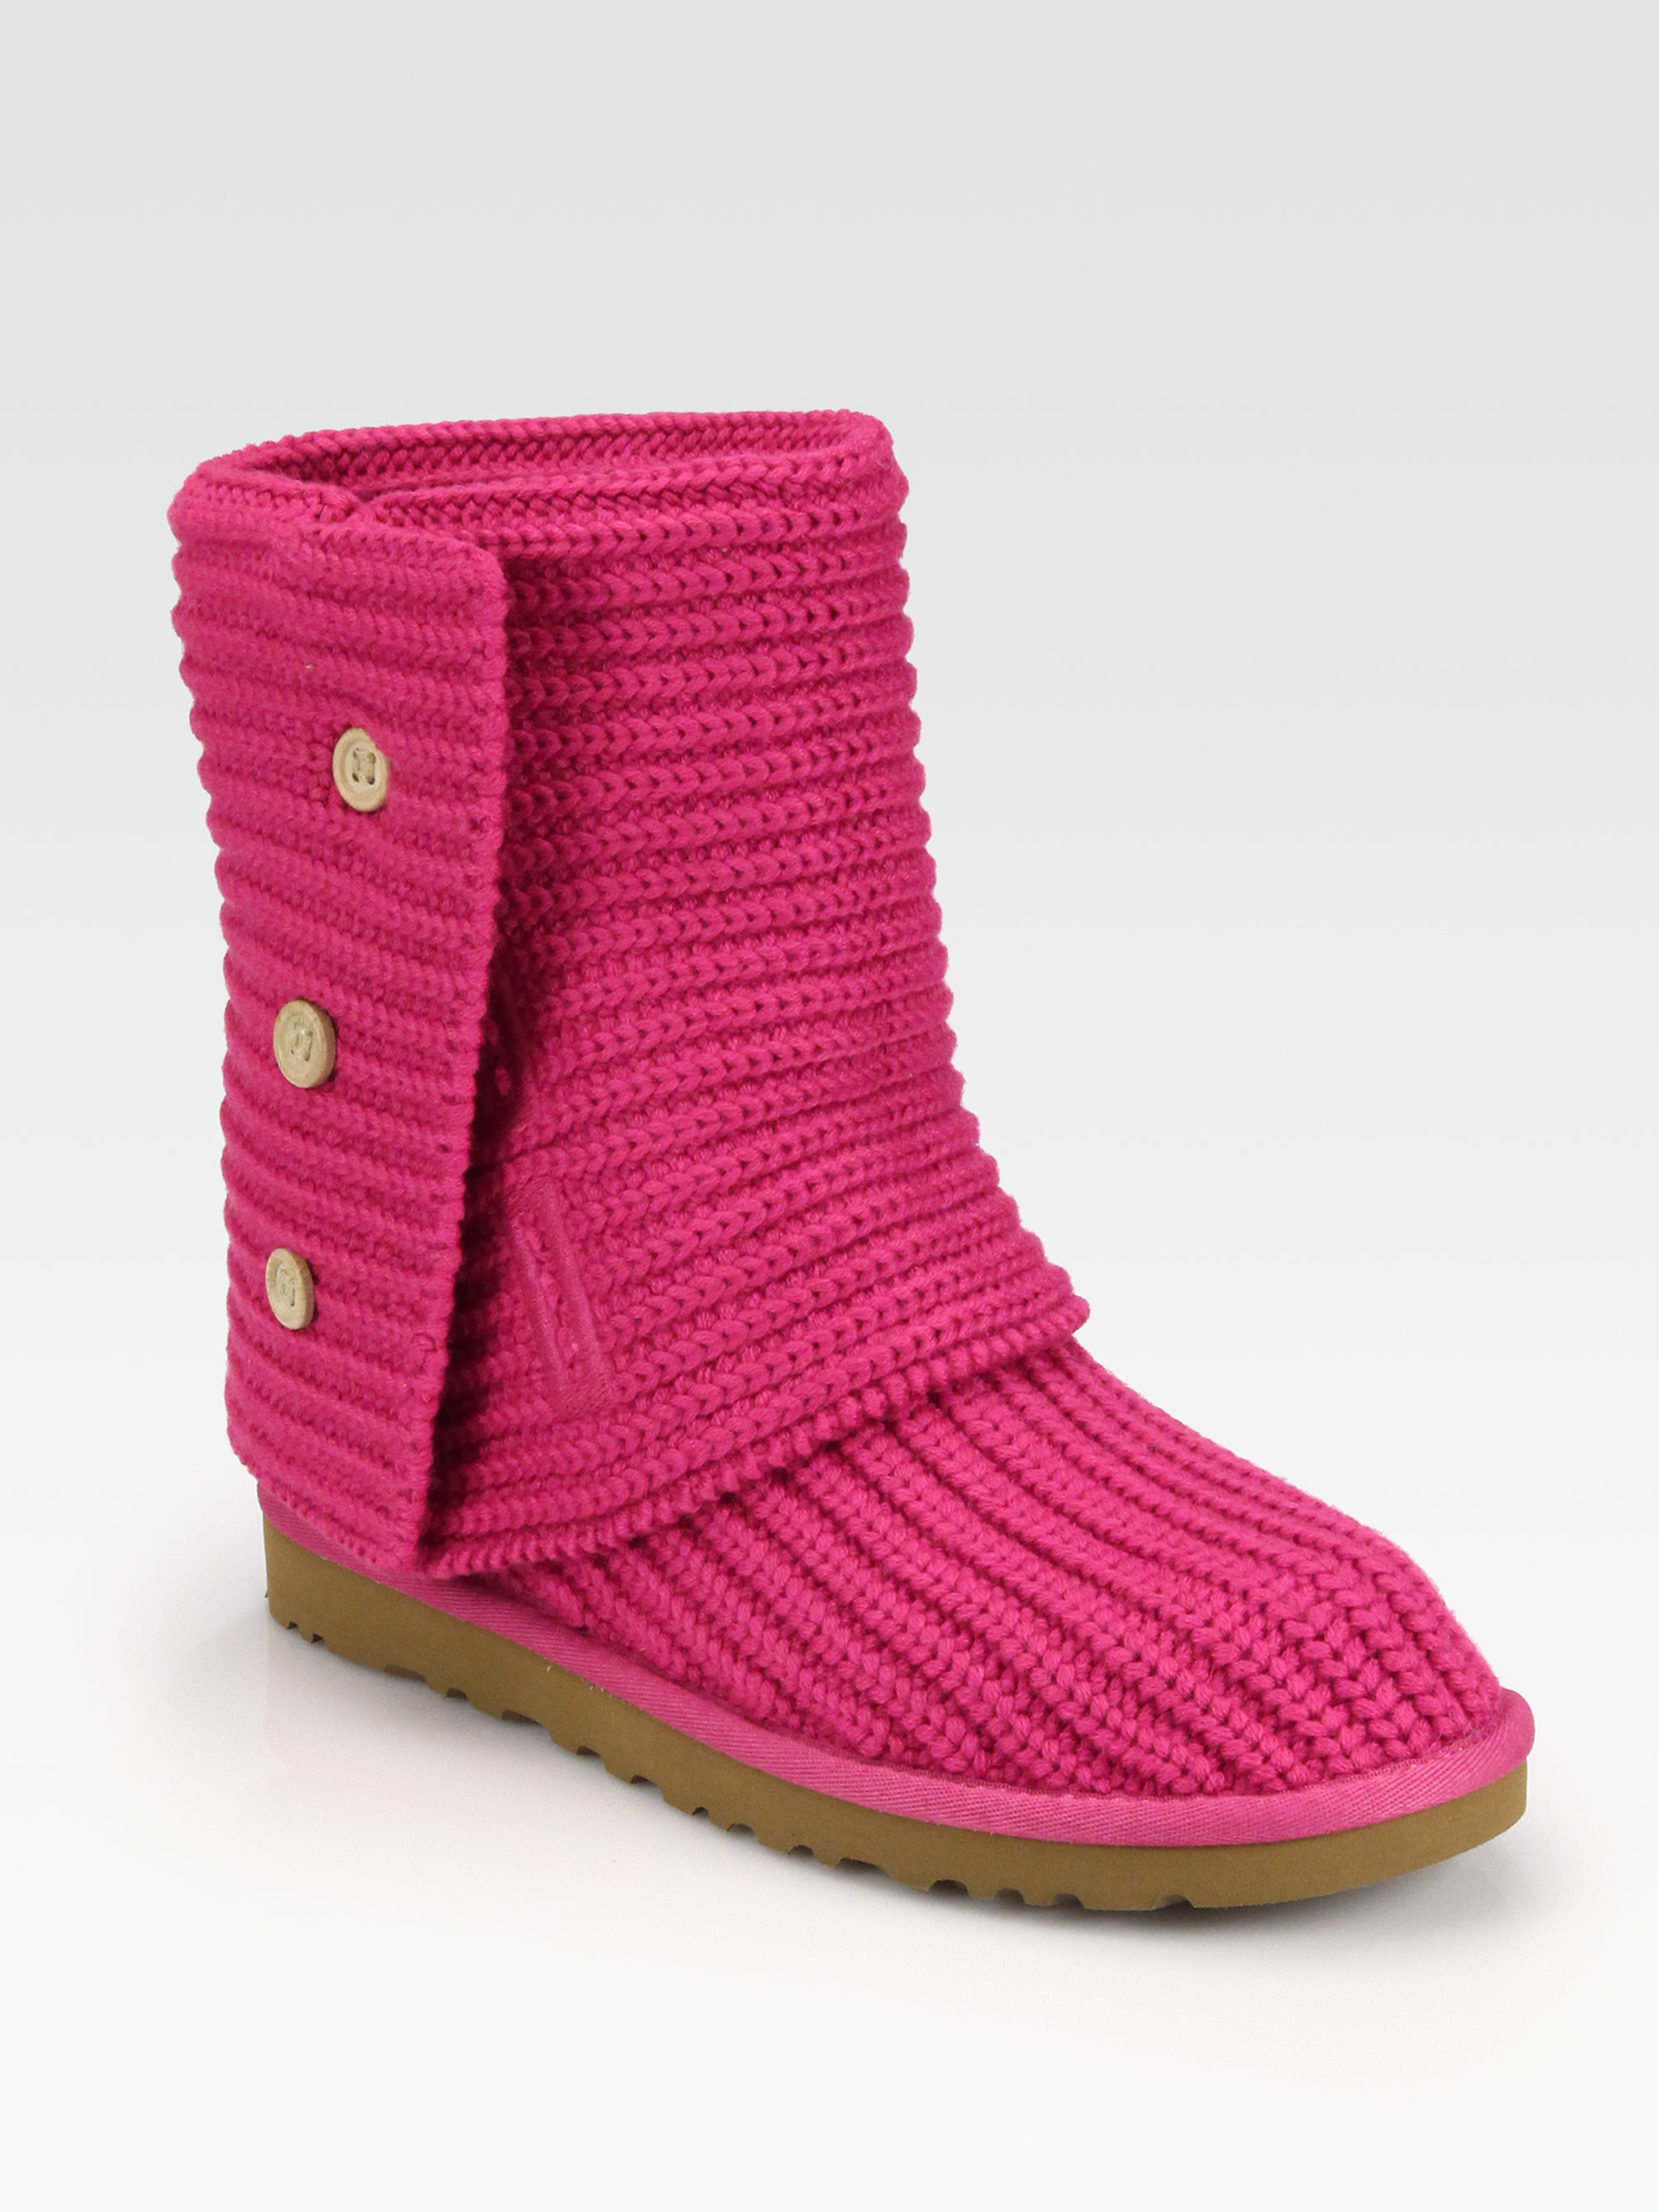 677d0f318ae UGG Pink Classic Cardy Boots